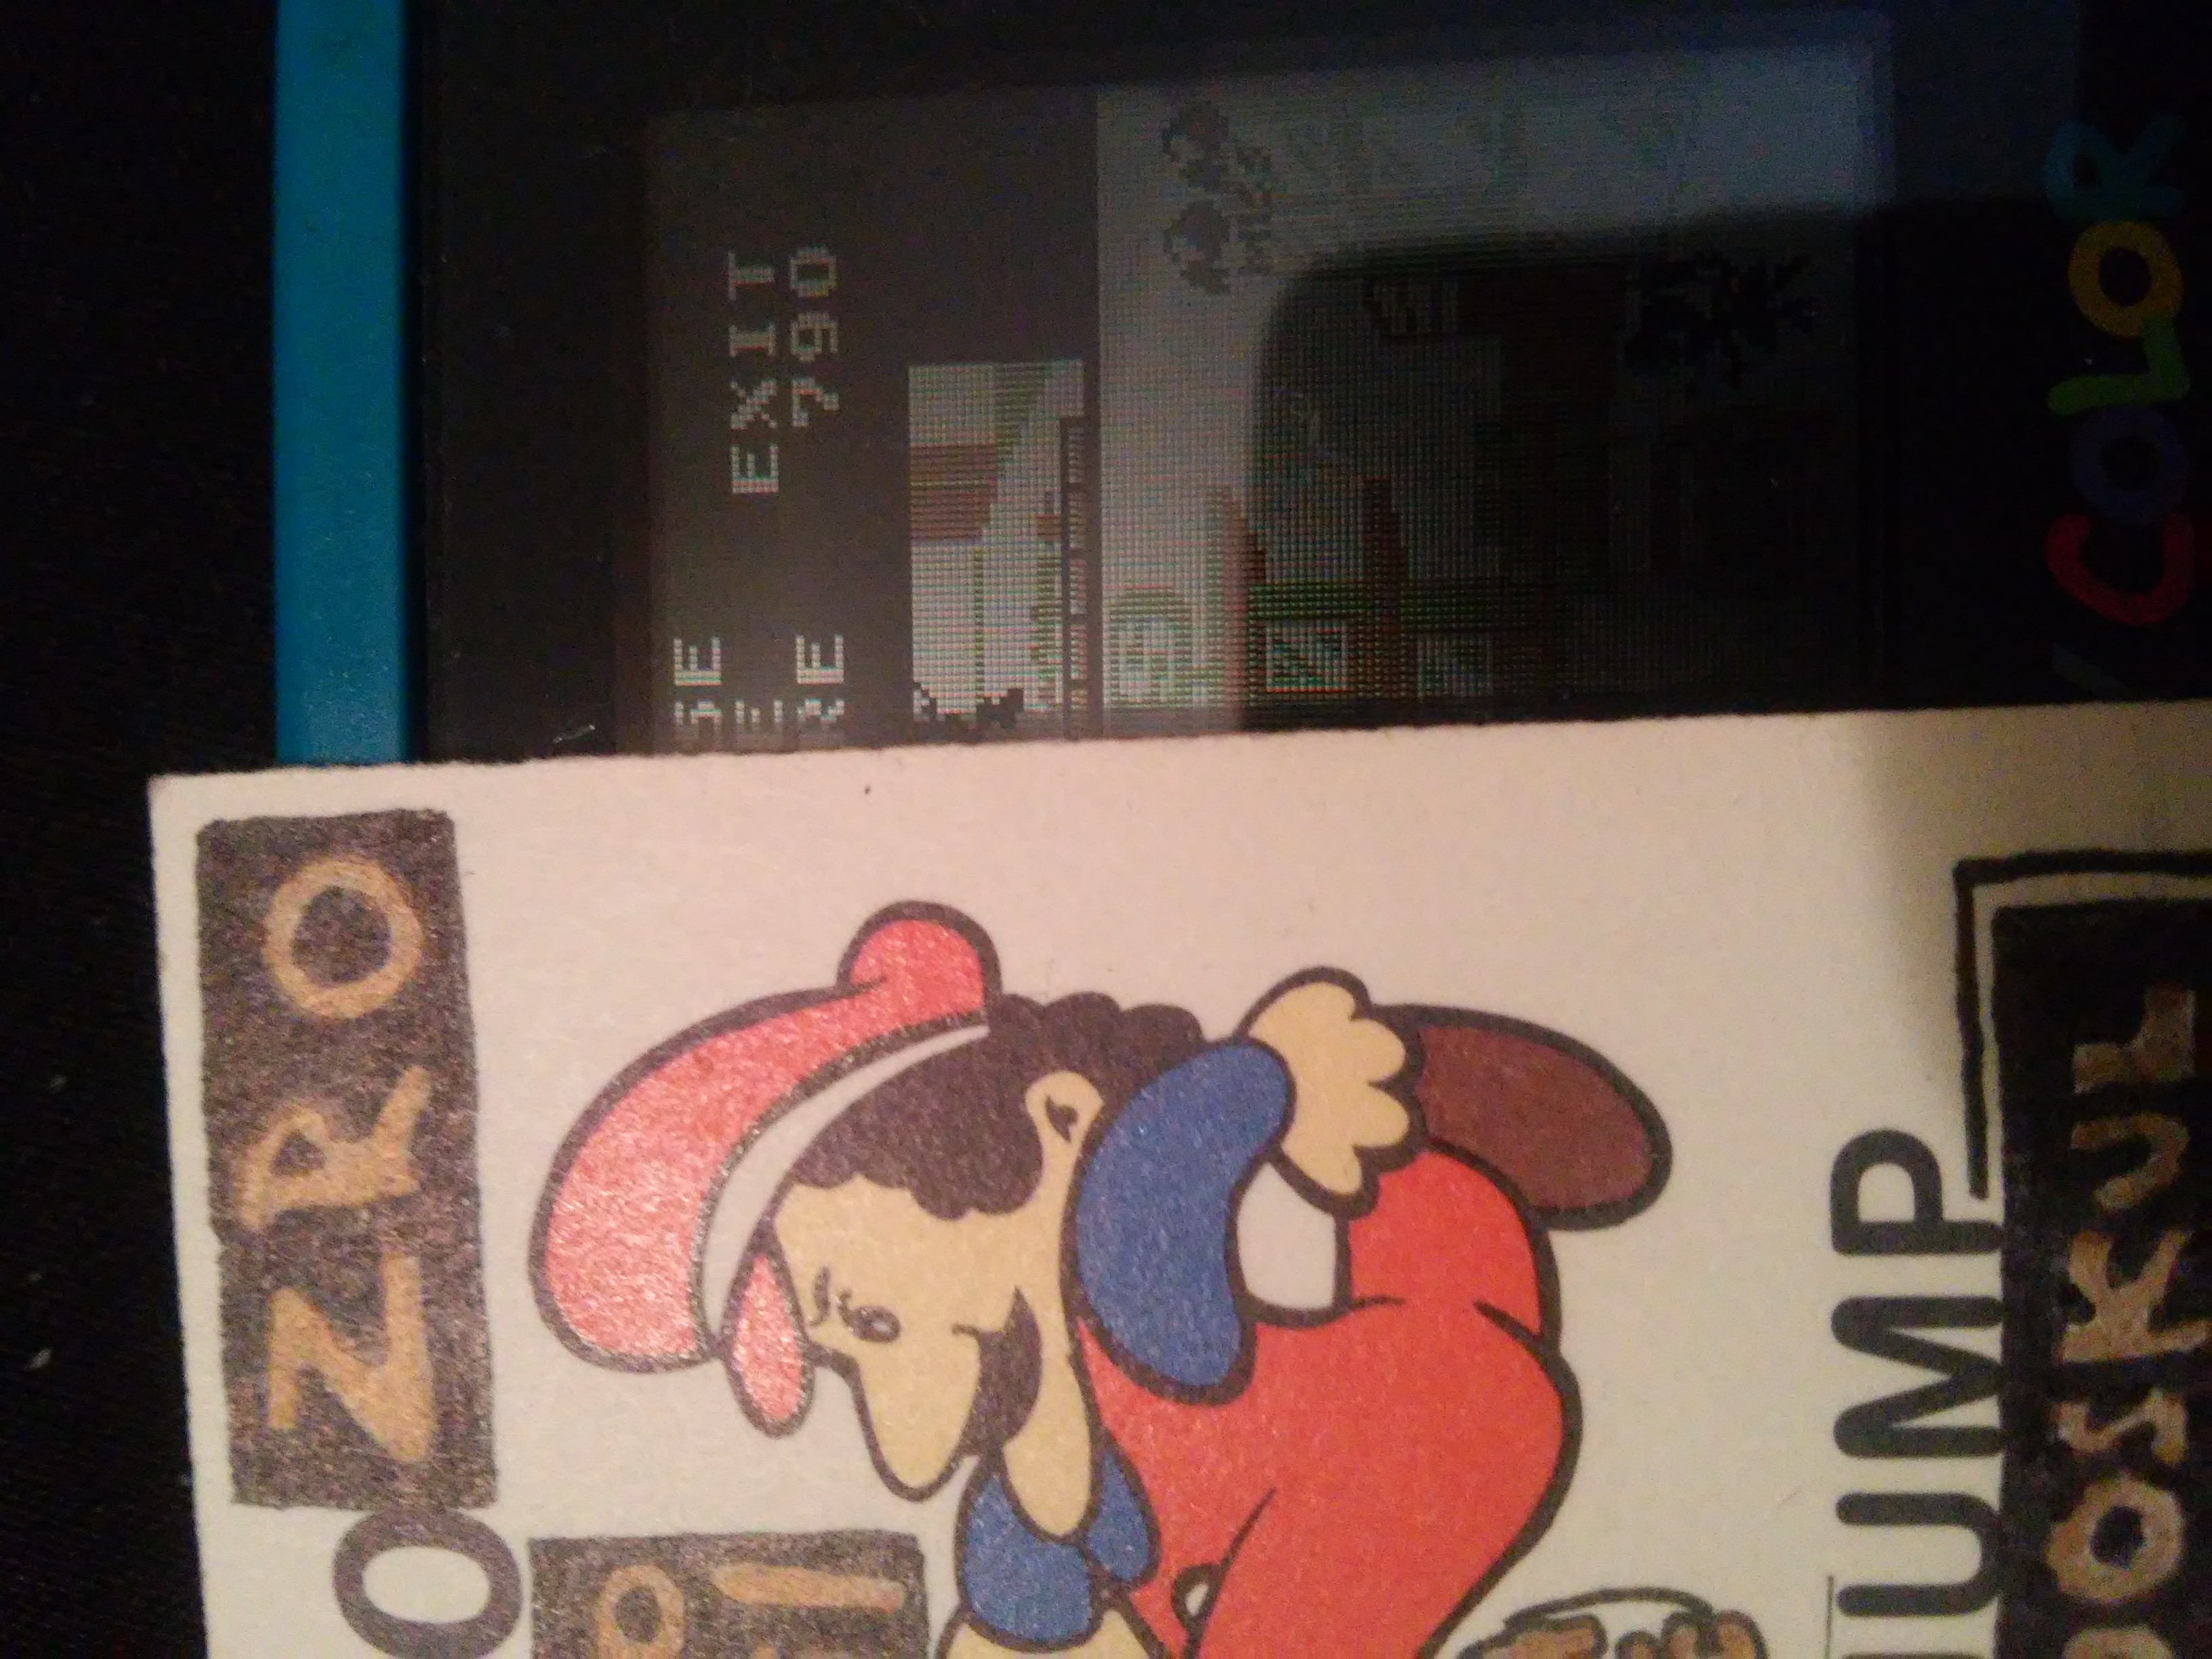 zerooskul: Game & Watch Gallery: Oil Panic [Classic: Hard] (Game Boy) 944 points on 2018-12-26 13:38:41